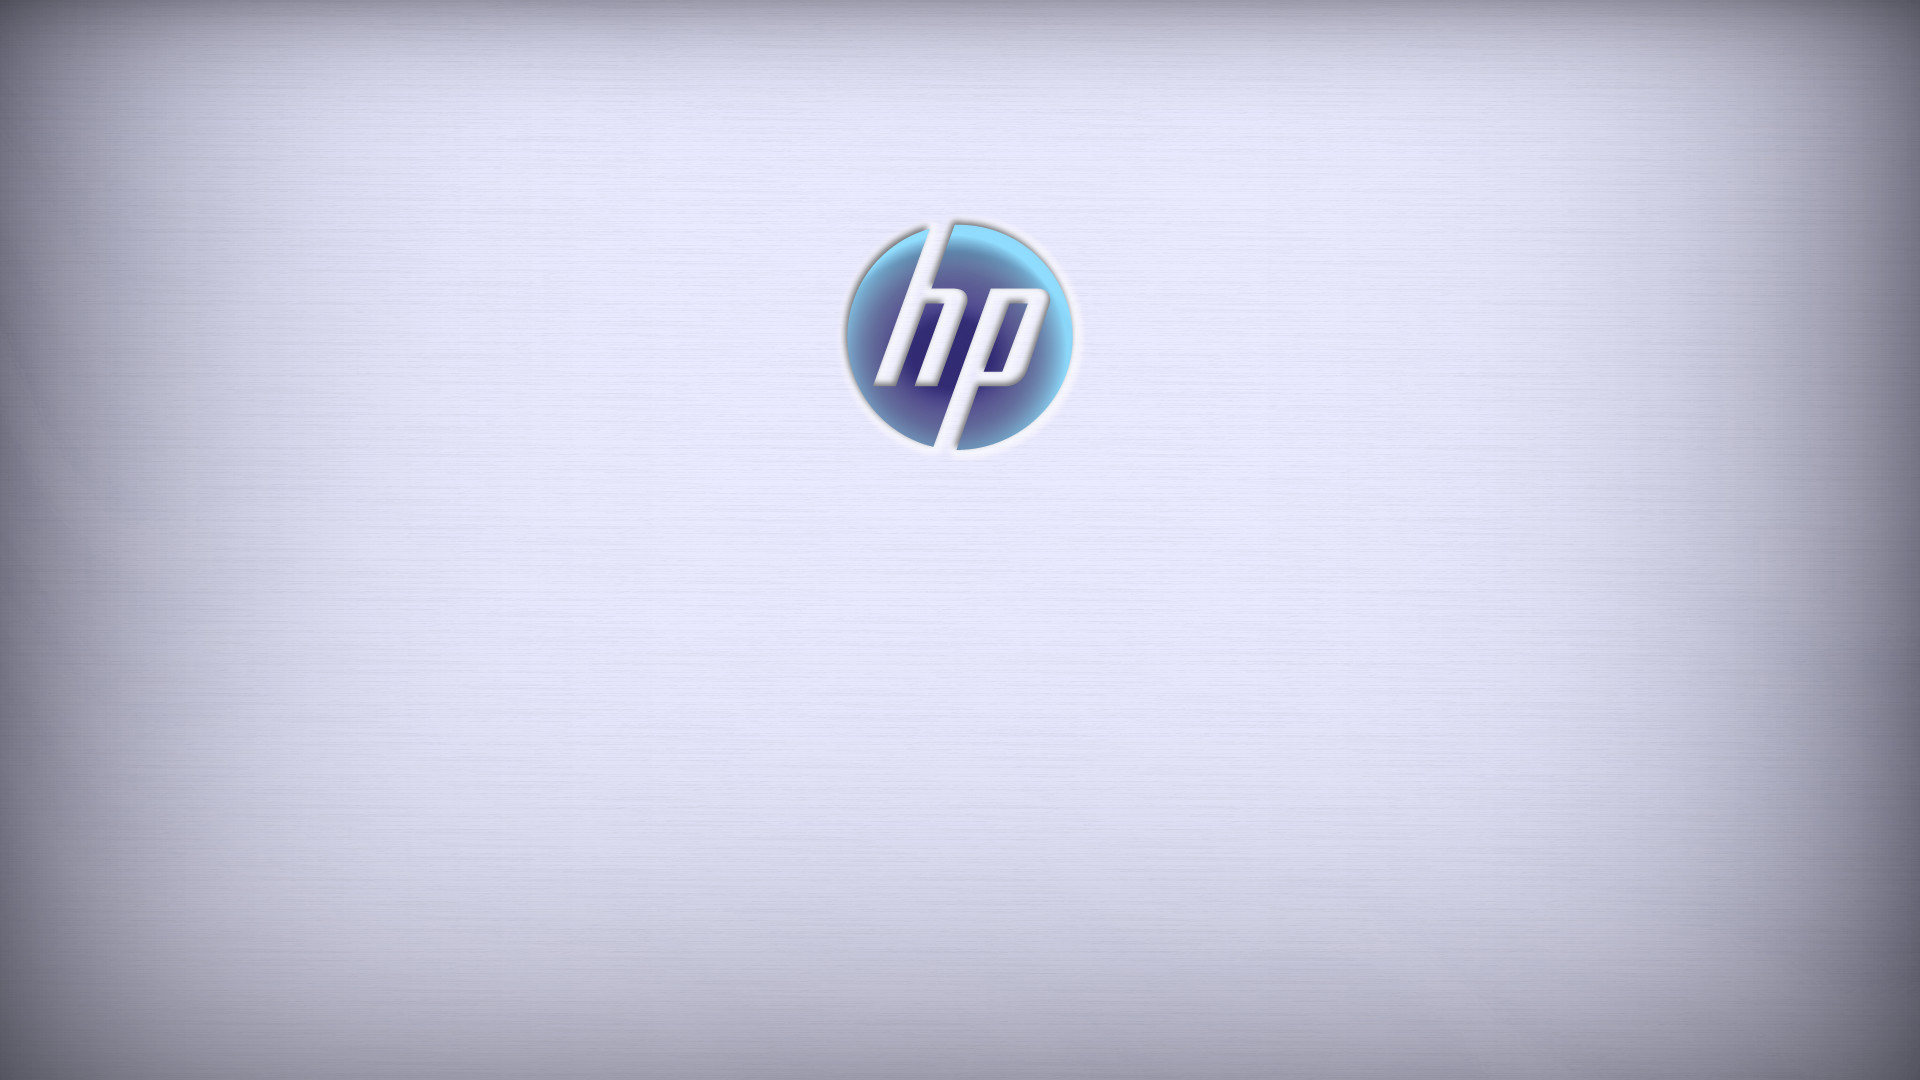 hp wallpaper hd 66 pictures